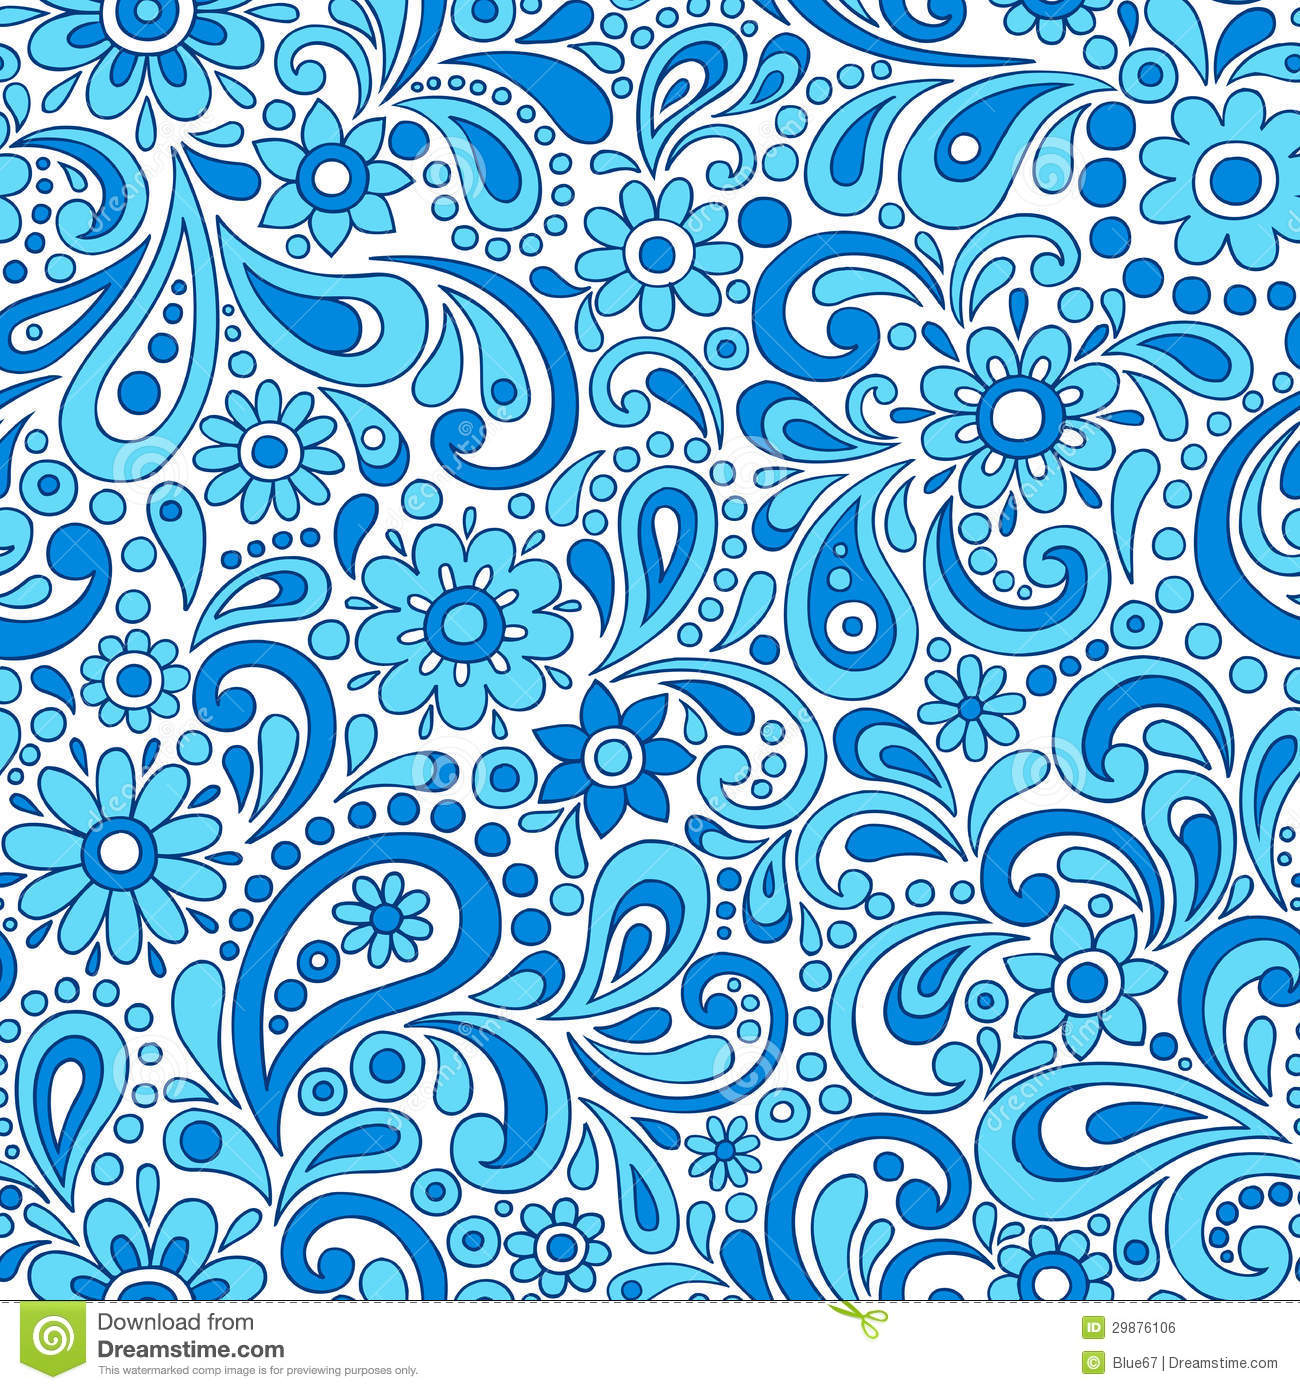 Paisley Henna Mehndi Elegant Flower and Swirl Doodles Seamless Pattern ...: www.dreamstime.com/royalty-free-stock-image-paisley-henna-mehndi...